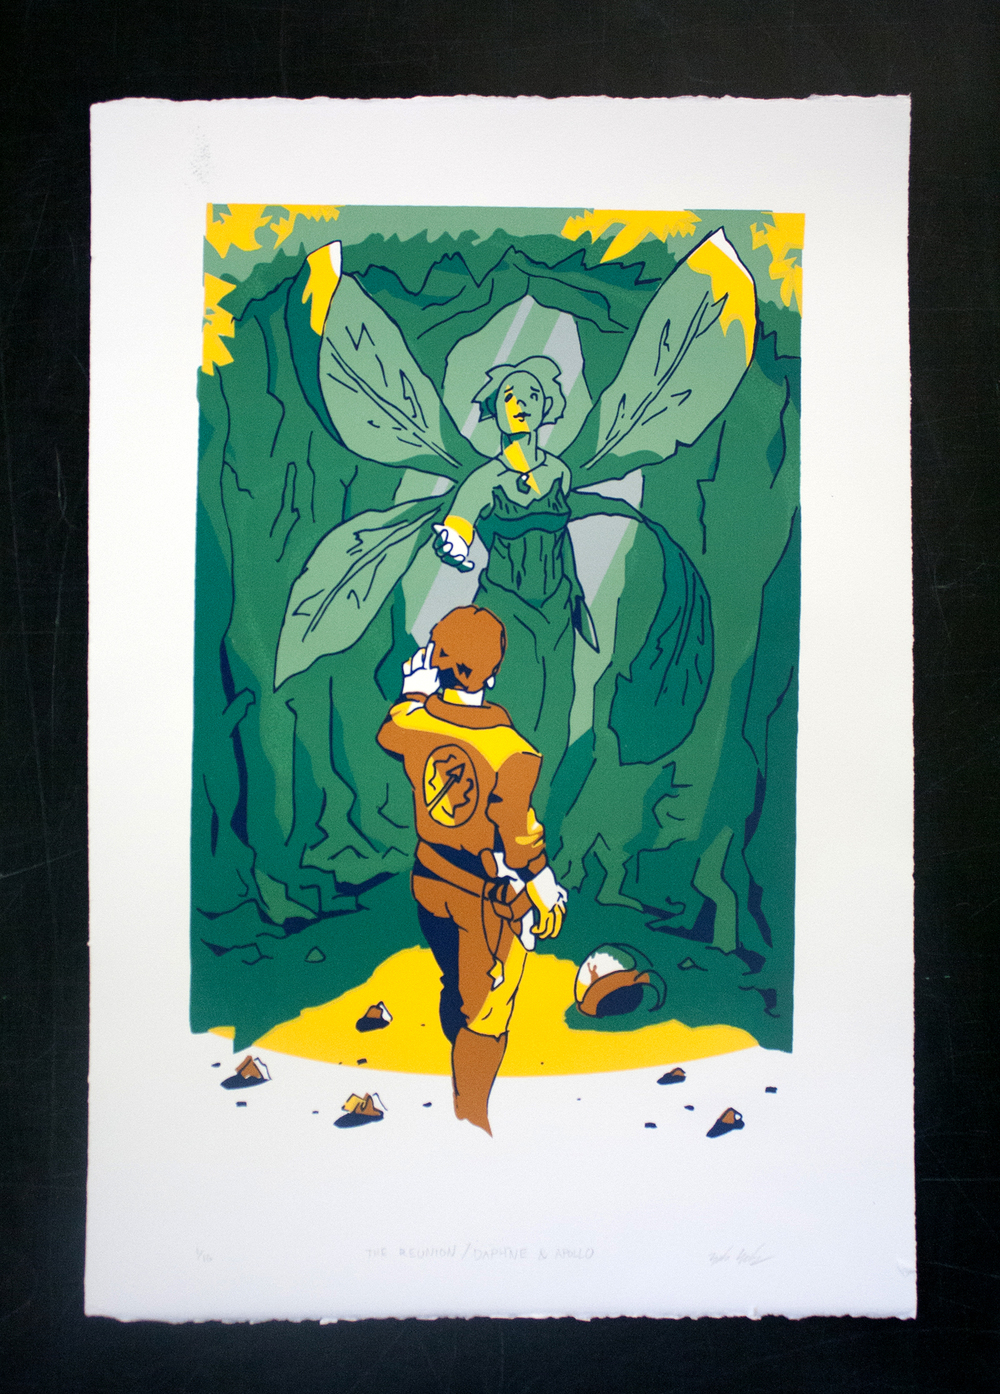 The Reunion / Daphne & Apollo, Screenprint